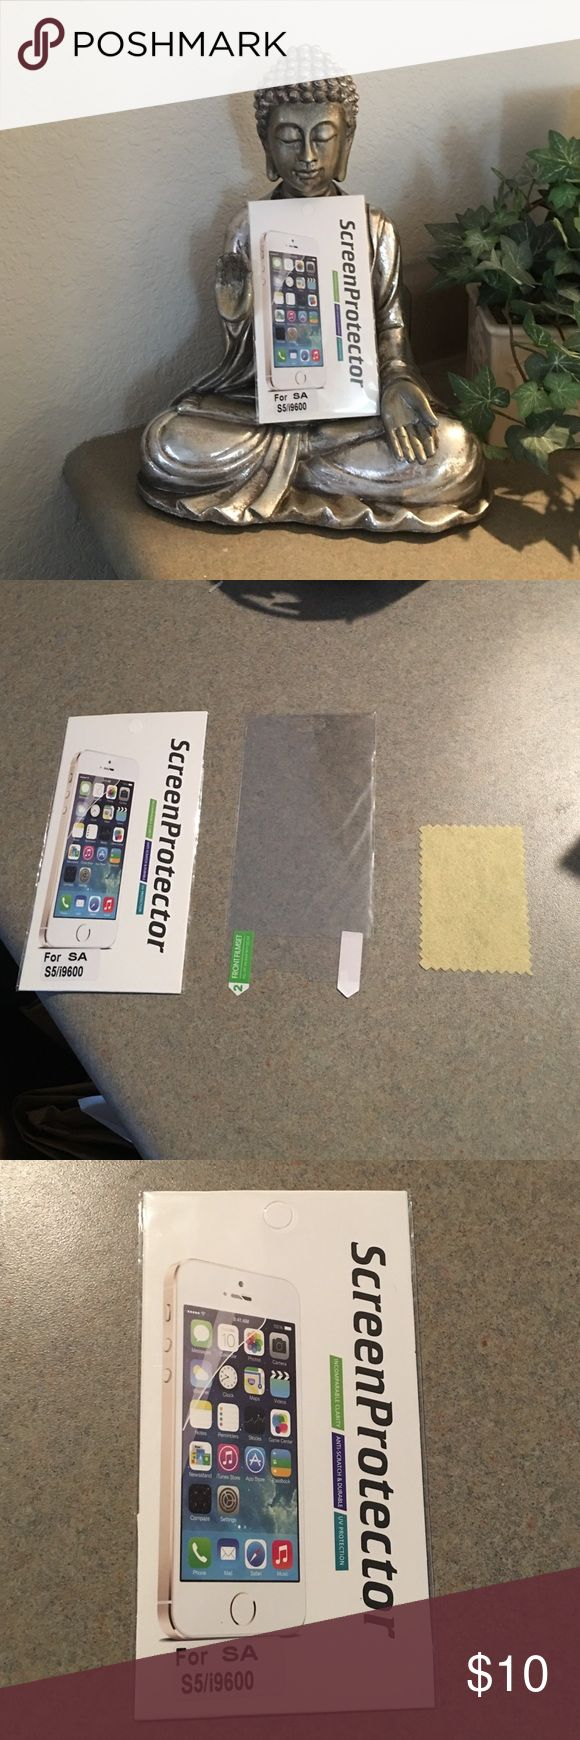 NWT Samsung S5 Screen Protector Samsung S5 do it yourself screen protector. NWT ! Free Shipping on Depop! Screen Protector Accessories Phone Cases